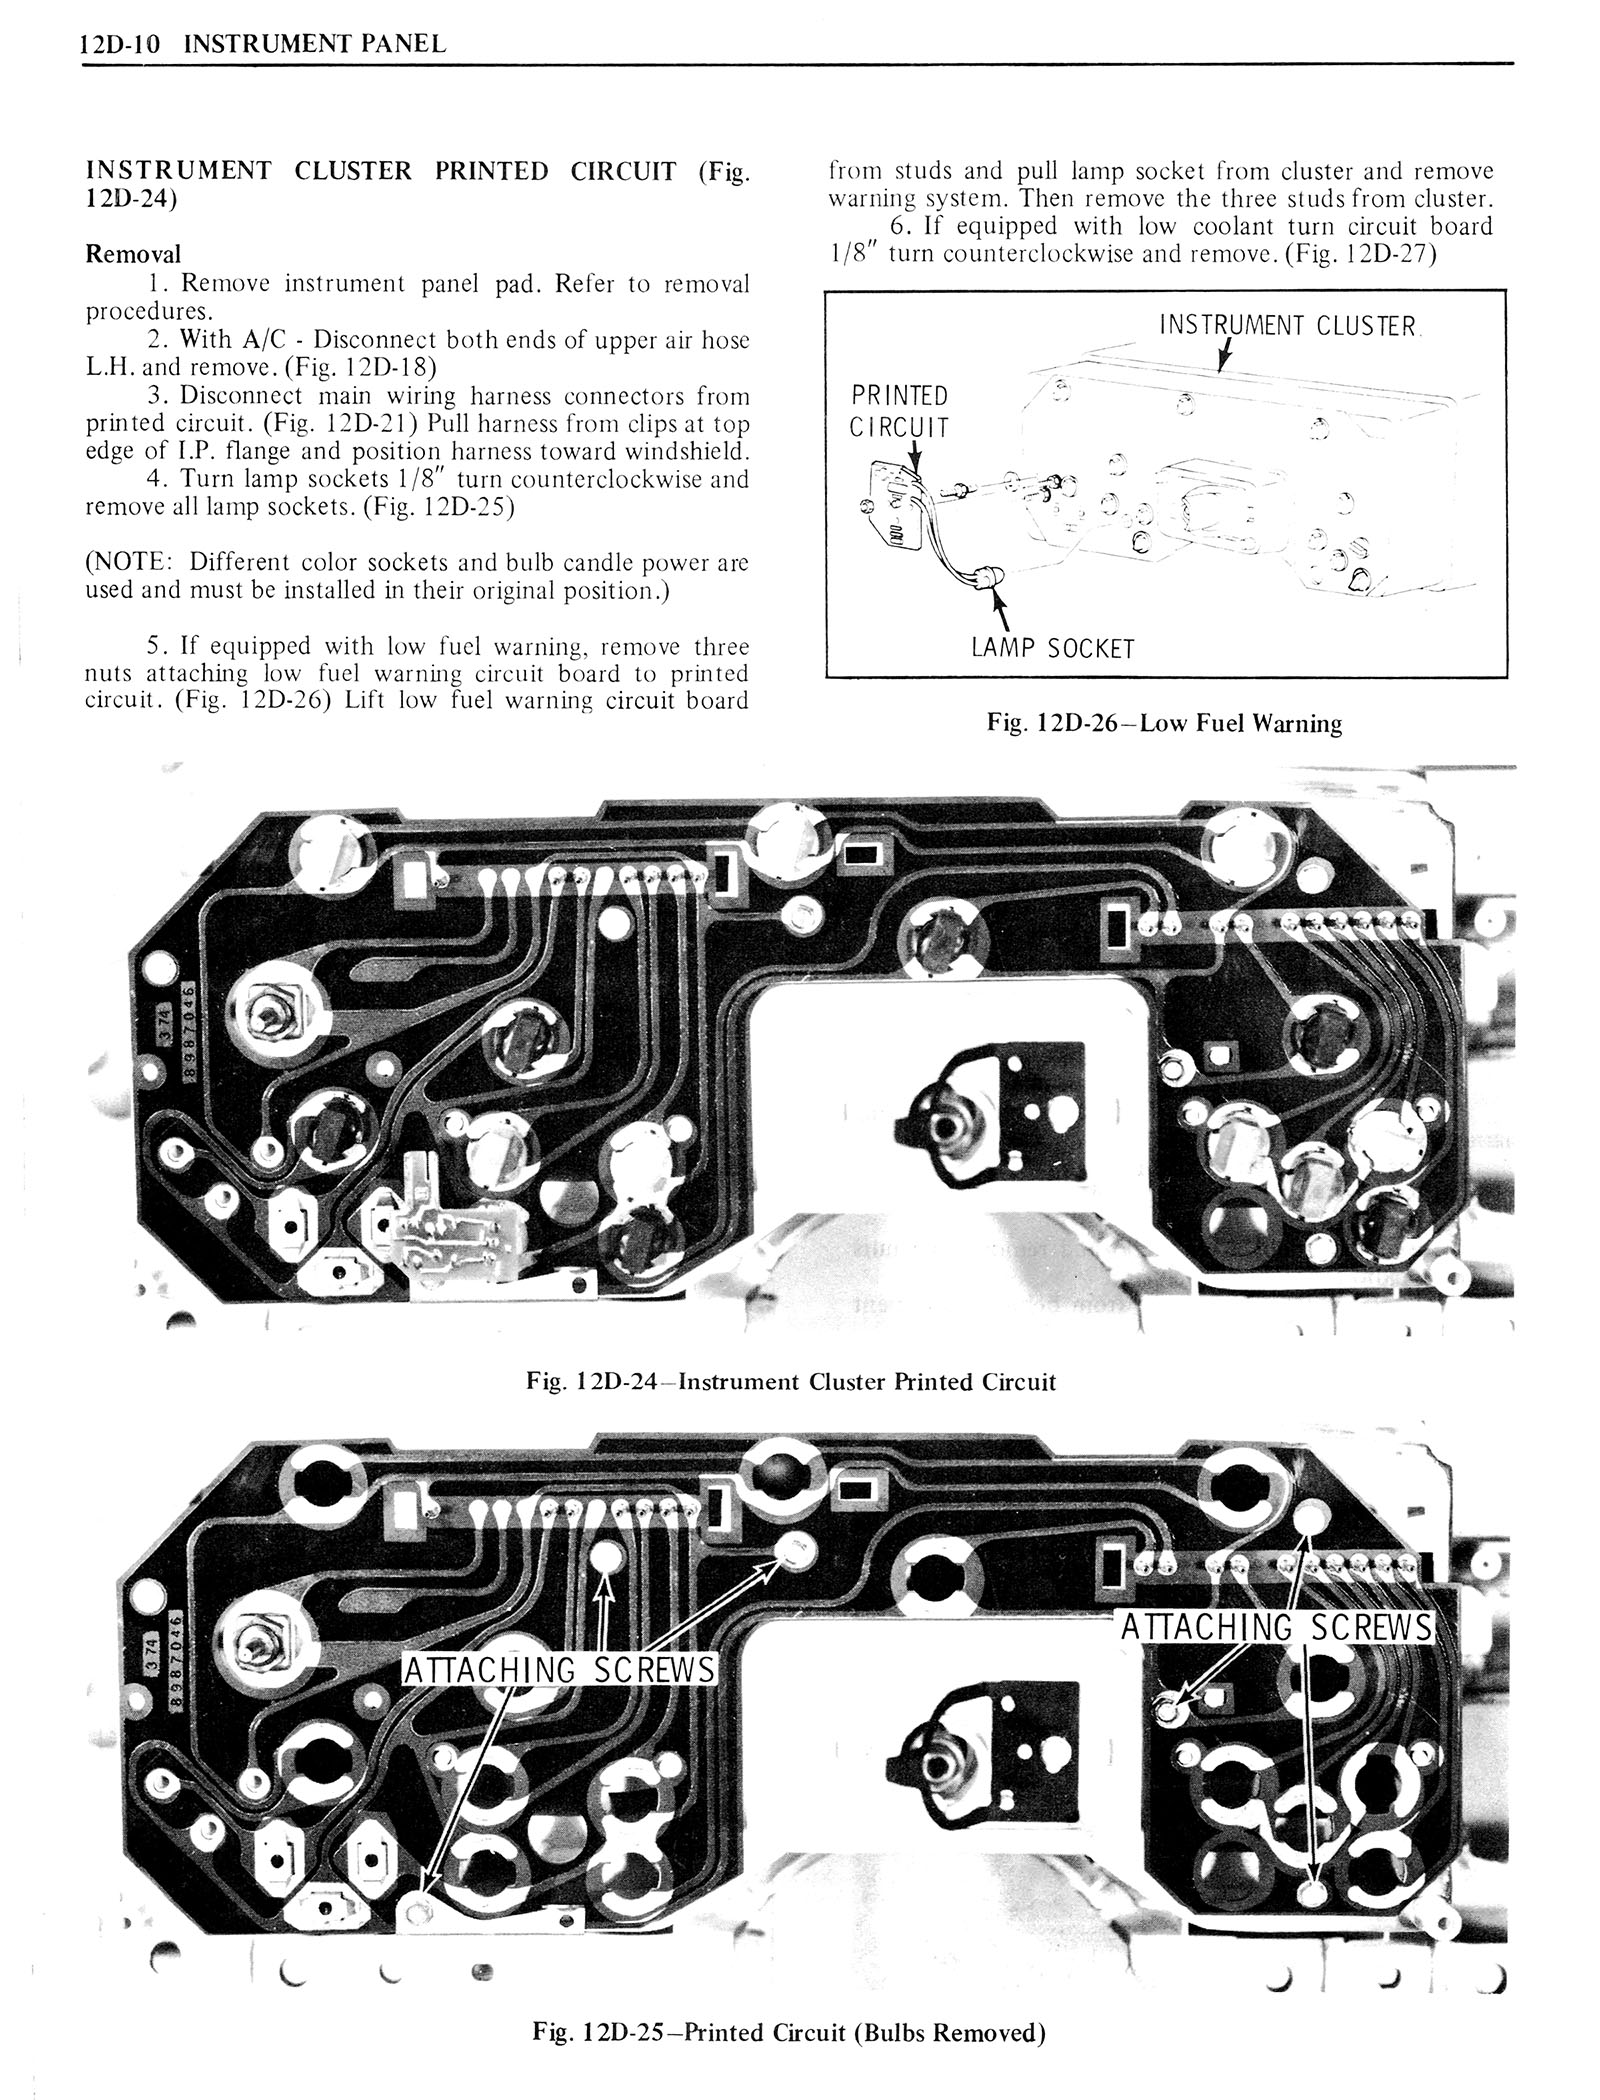 1976 Oldsmobile Service Manual page 1274 of 1390